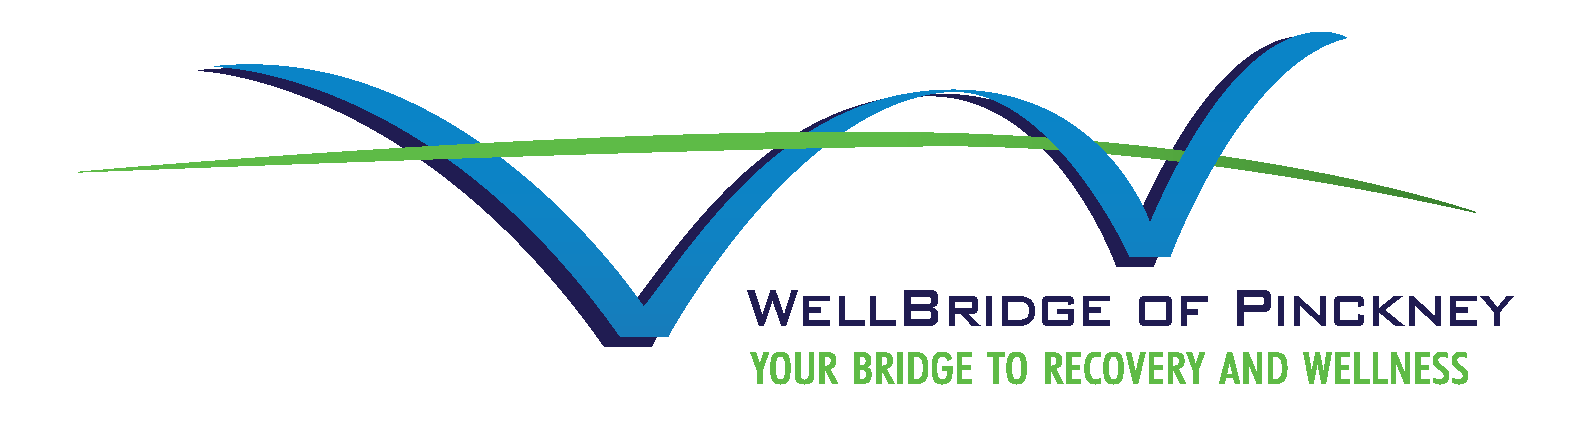 WellBridge-Pinckney-Logo-with-Tagline.png